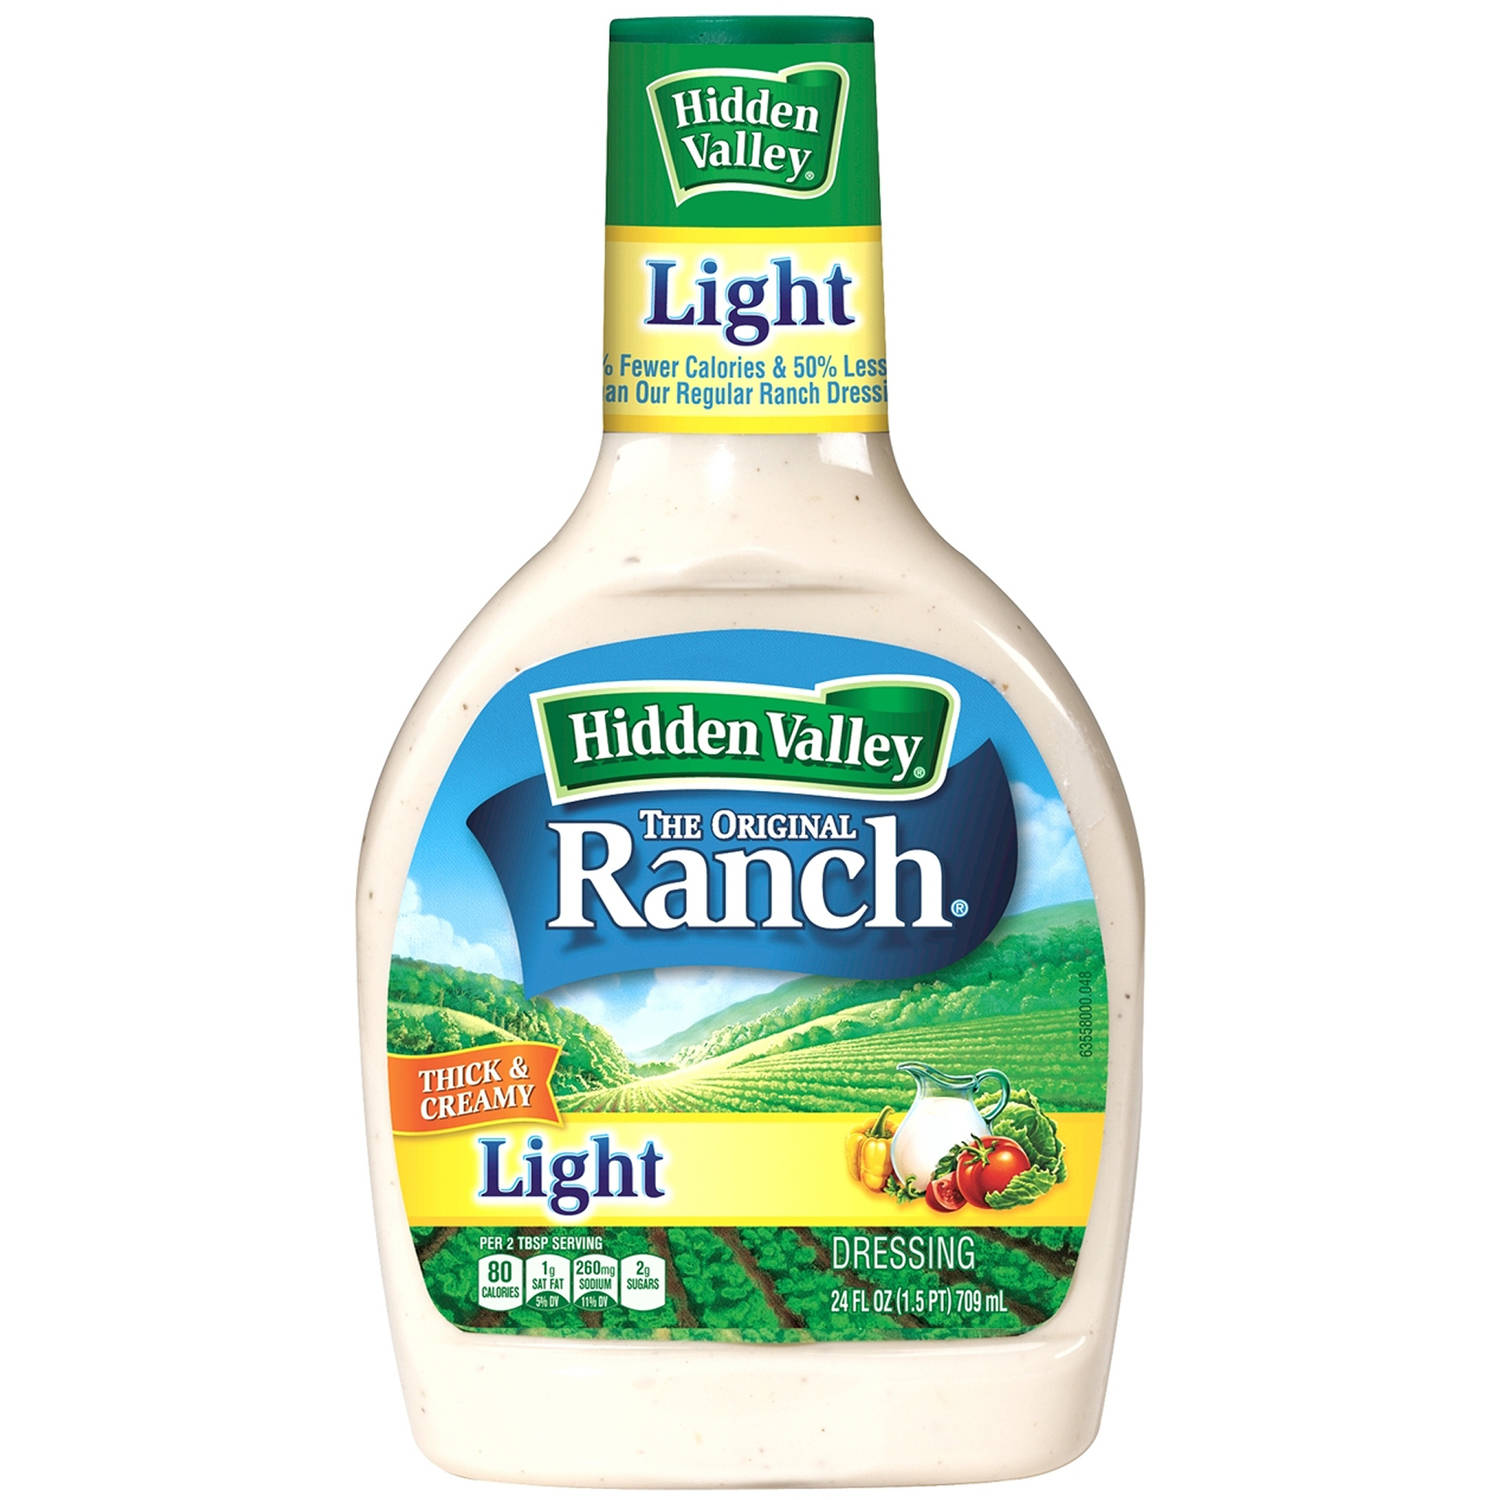 Hidden Valley Original Ranch Light Dressing, 24 Fluid Ounce Bottle